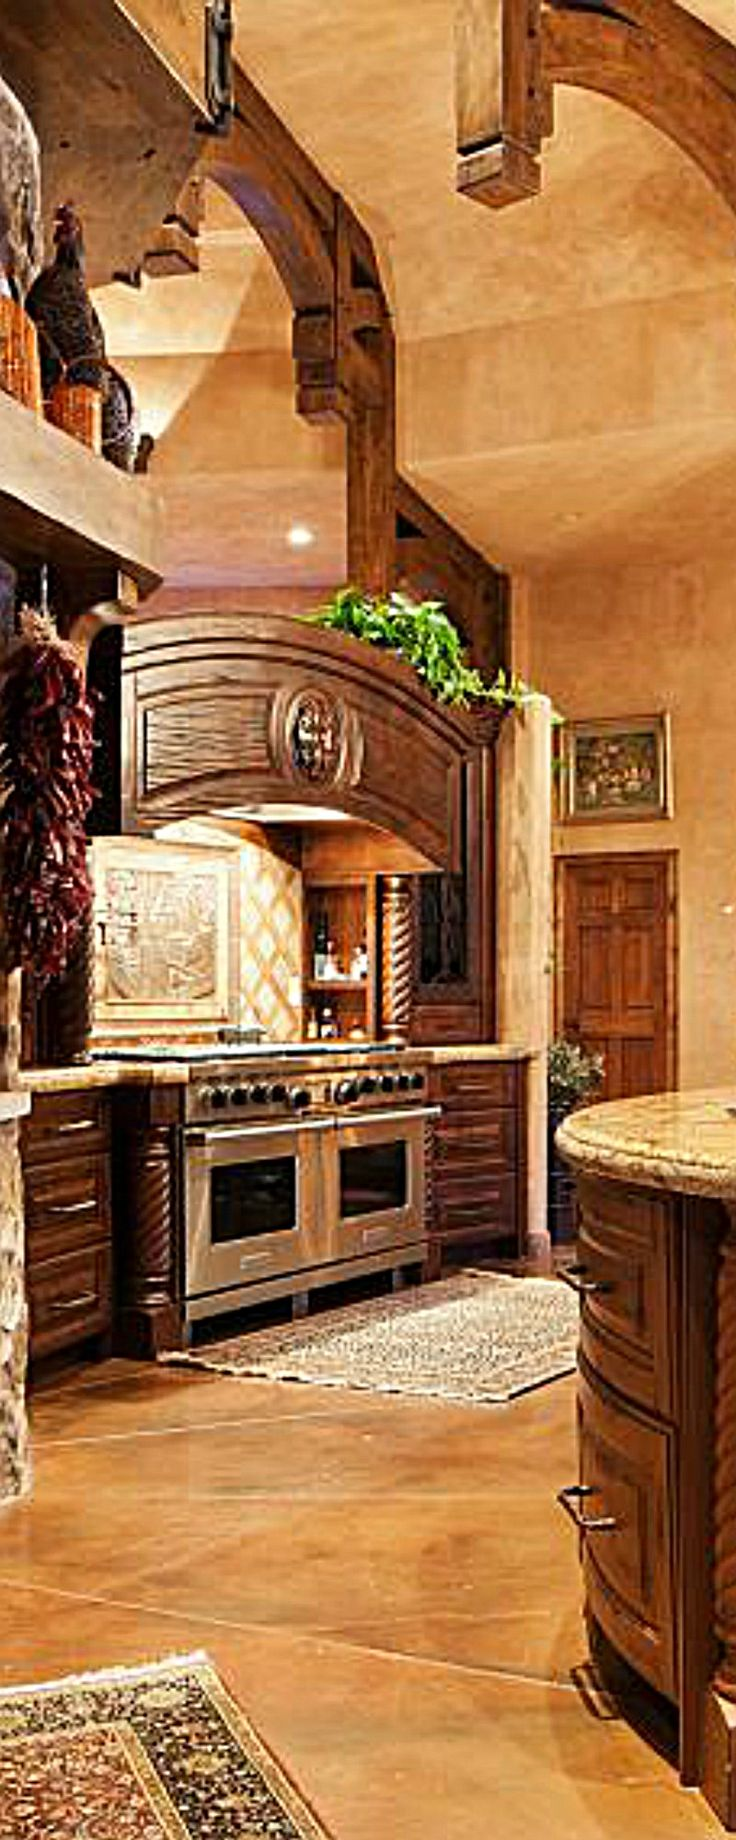 tuscany kitchen colors best 25 tuscan kitchens ideas on tuscany 2985